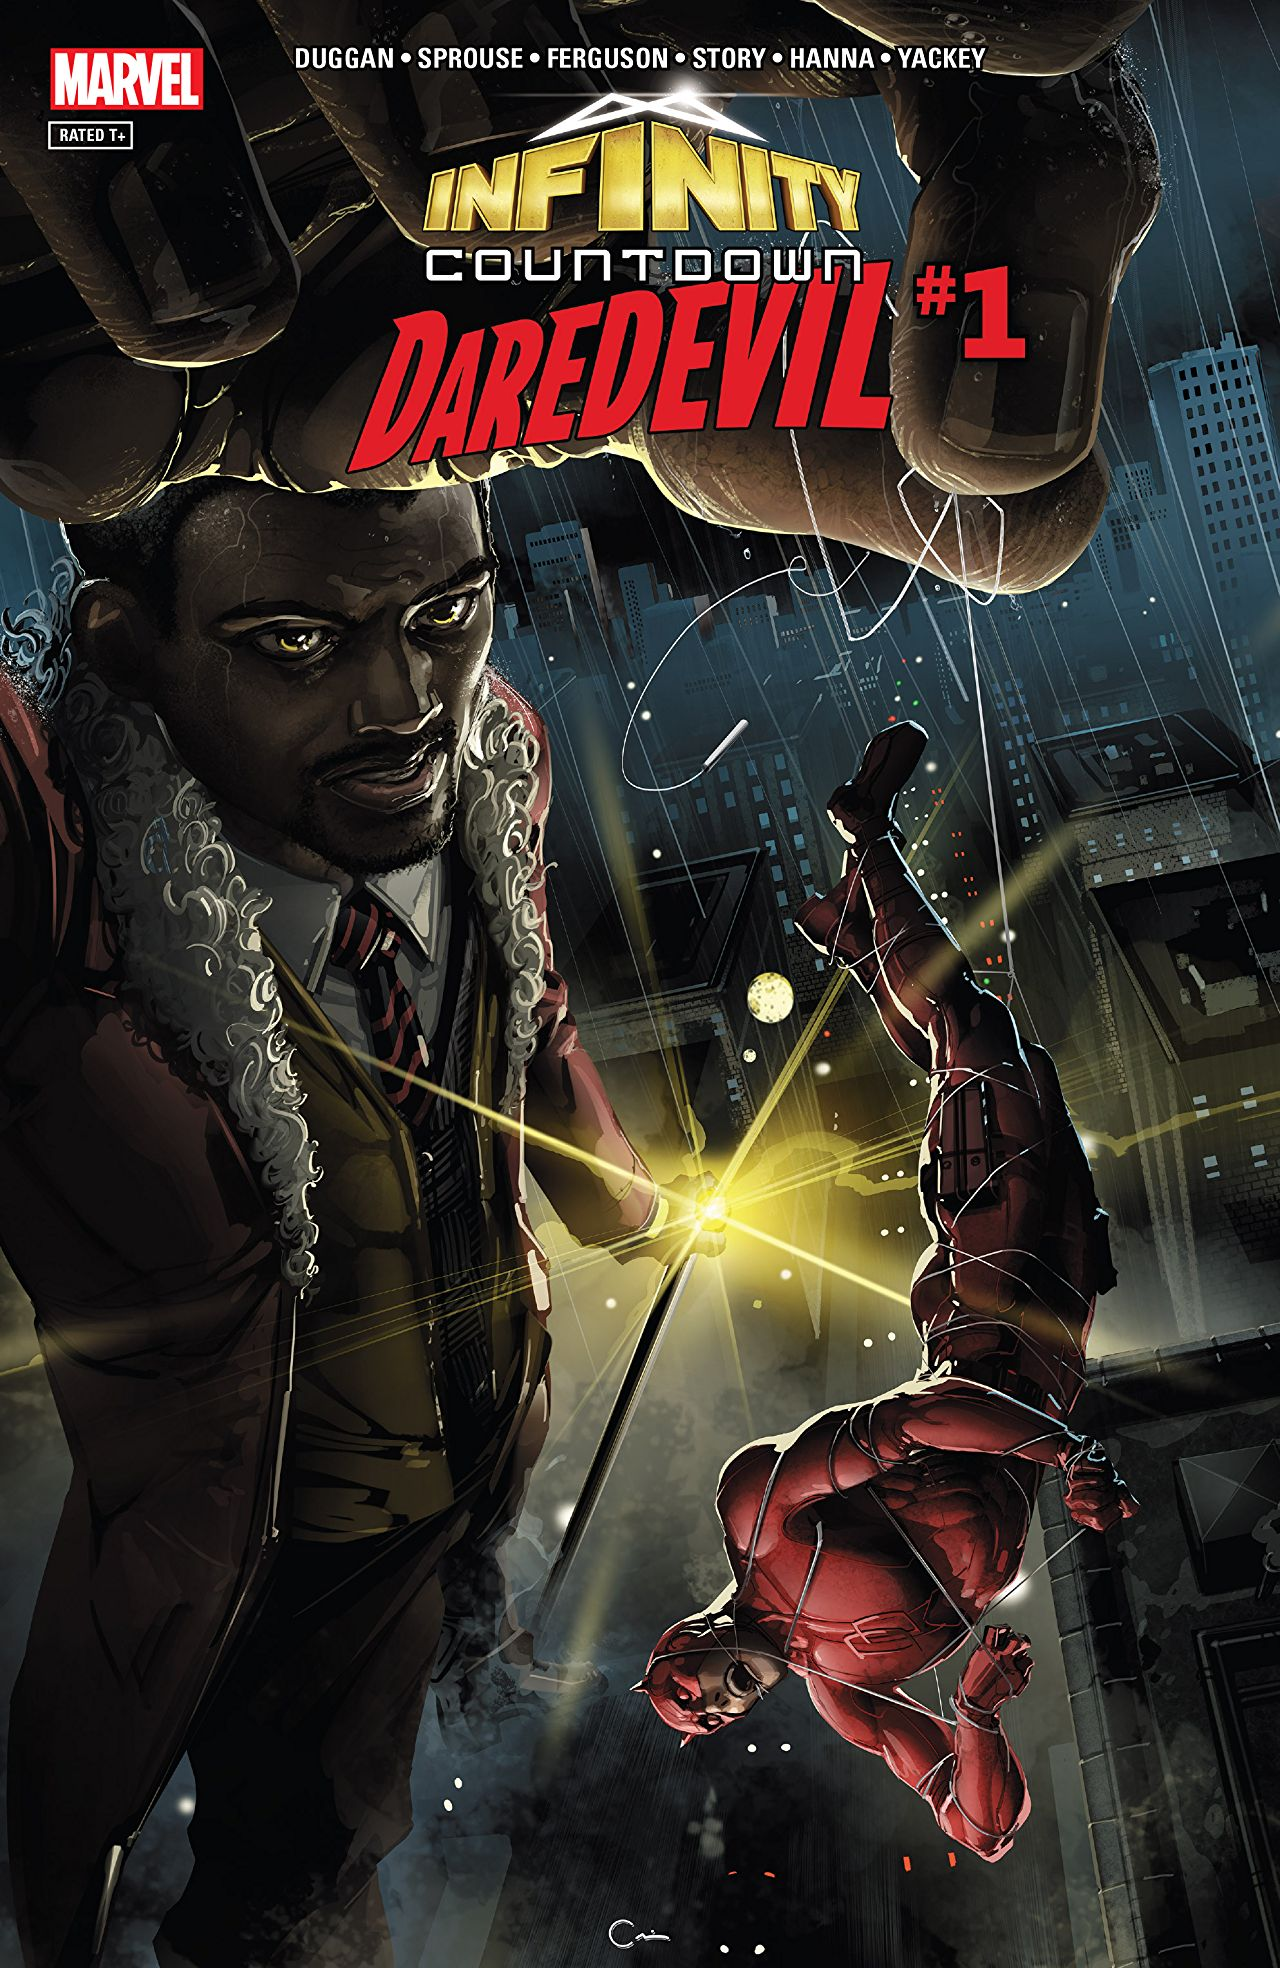 Infinity Countdown: Daredevil #1 Review